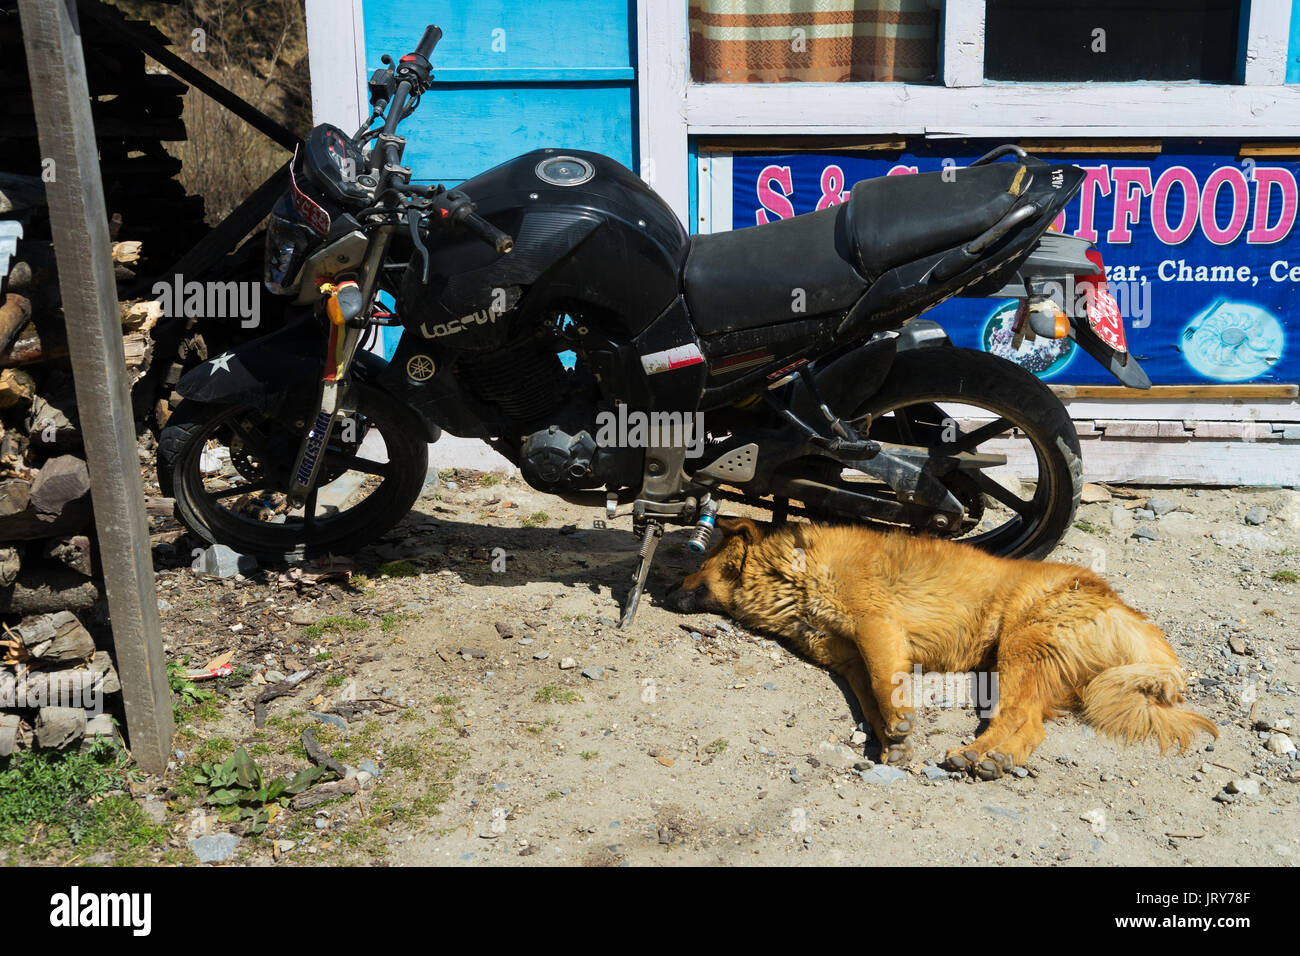 Dog sleeping on the ground beside a motorcycle. - Stock Image